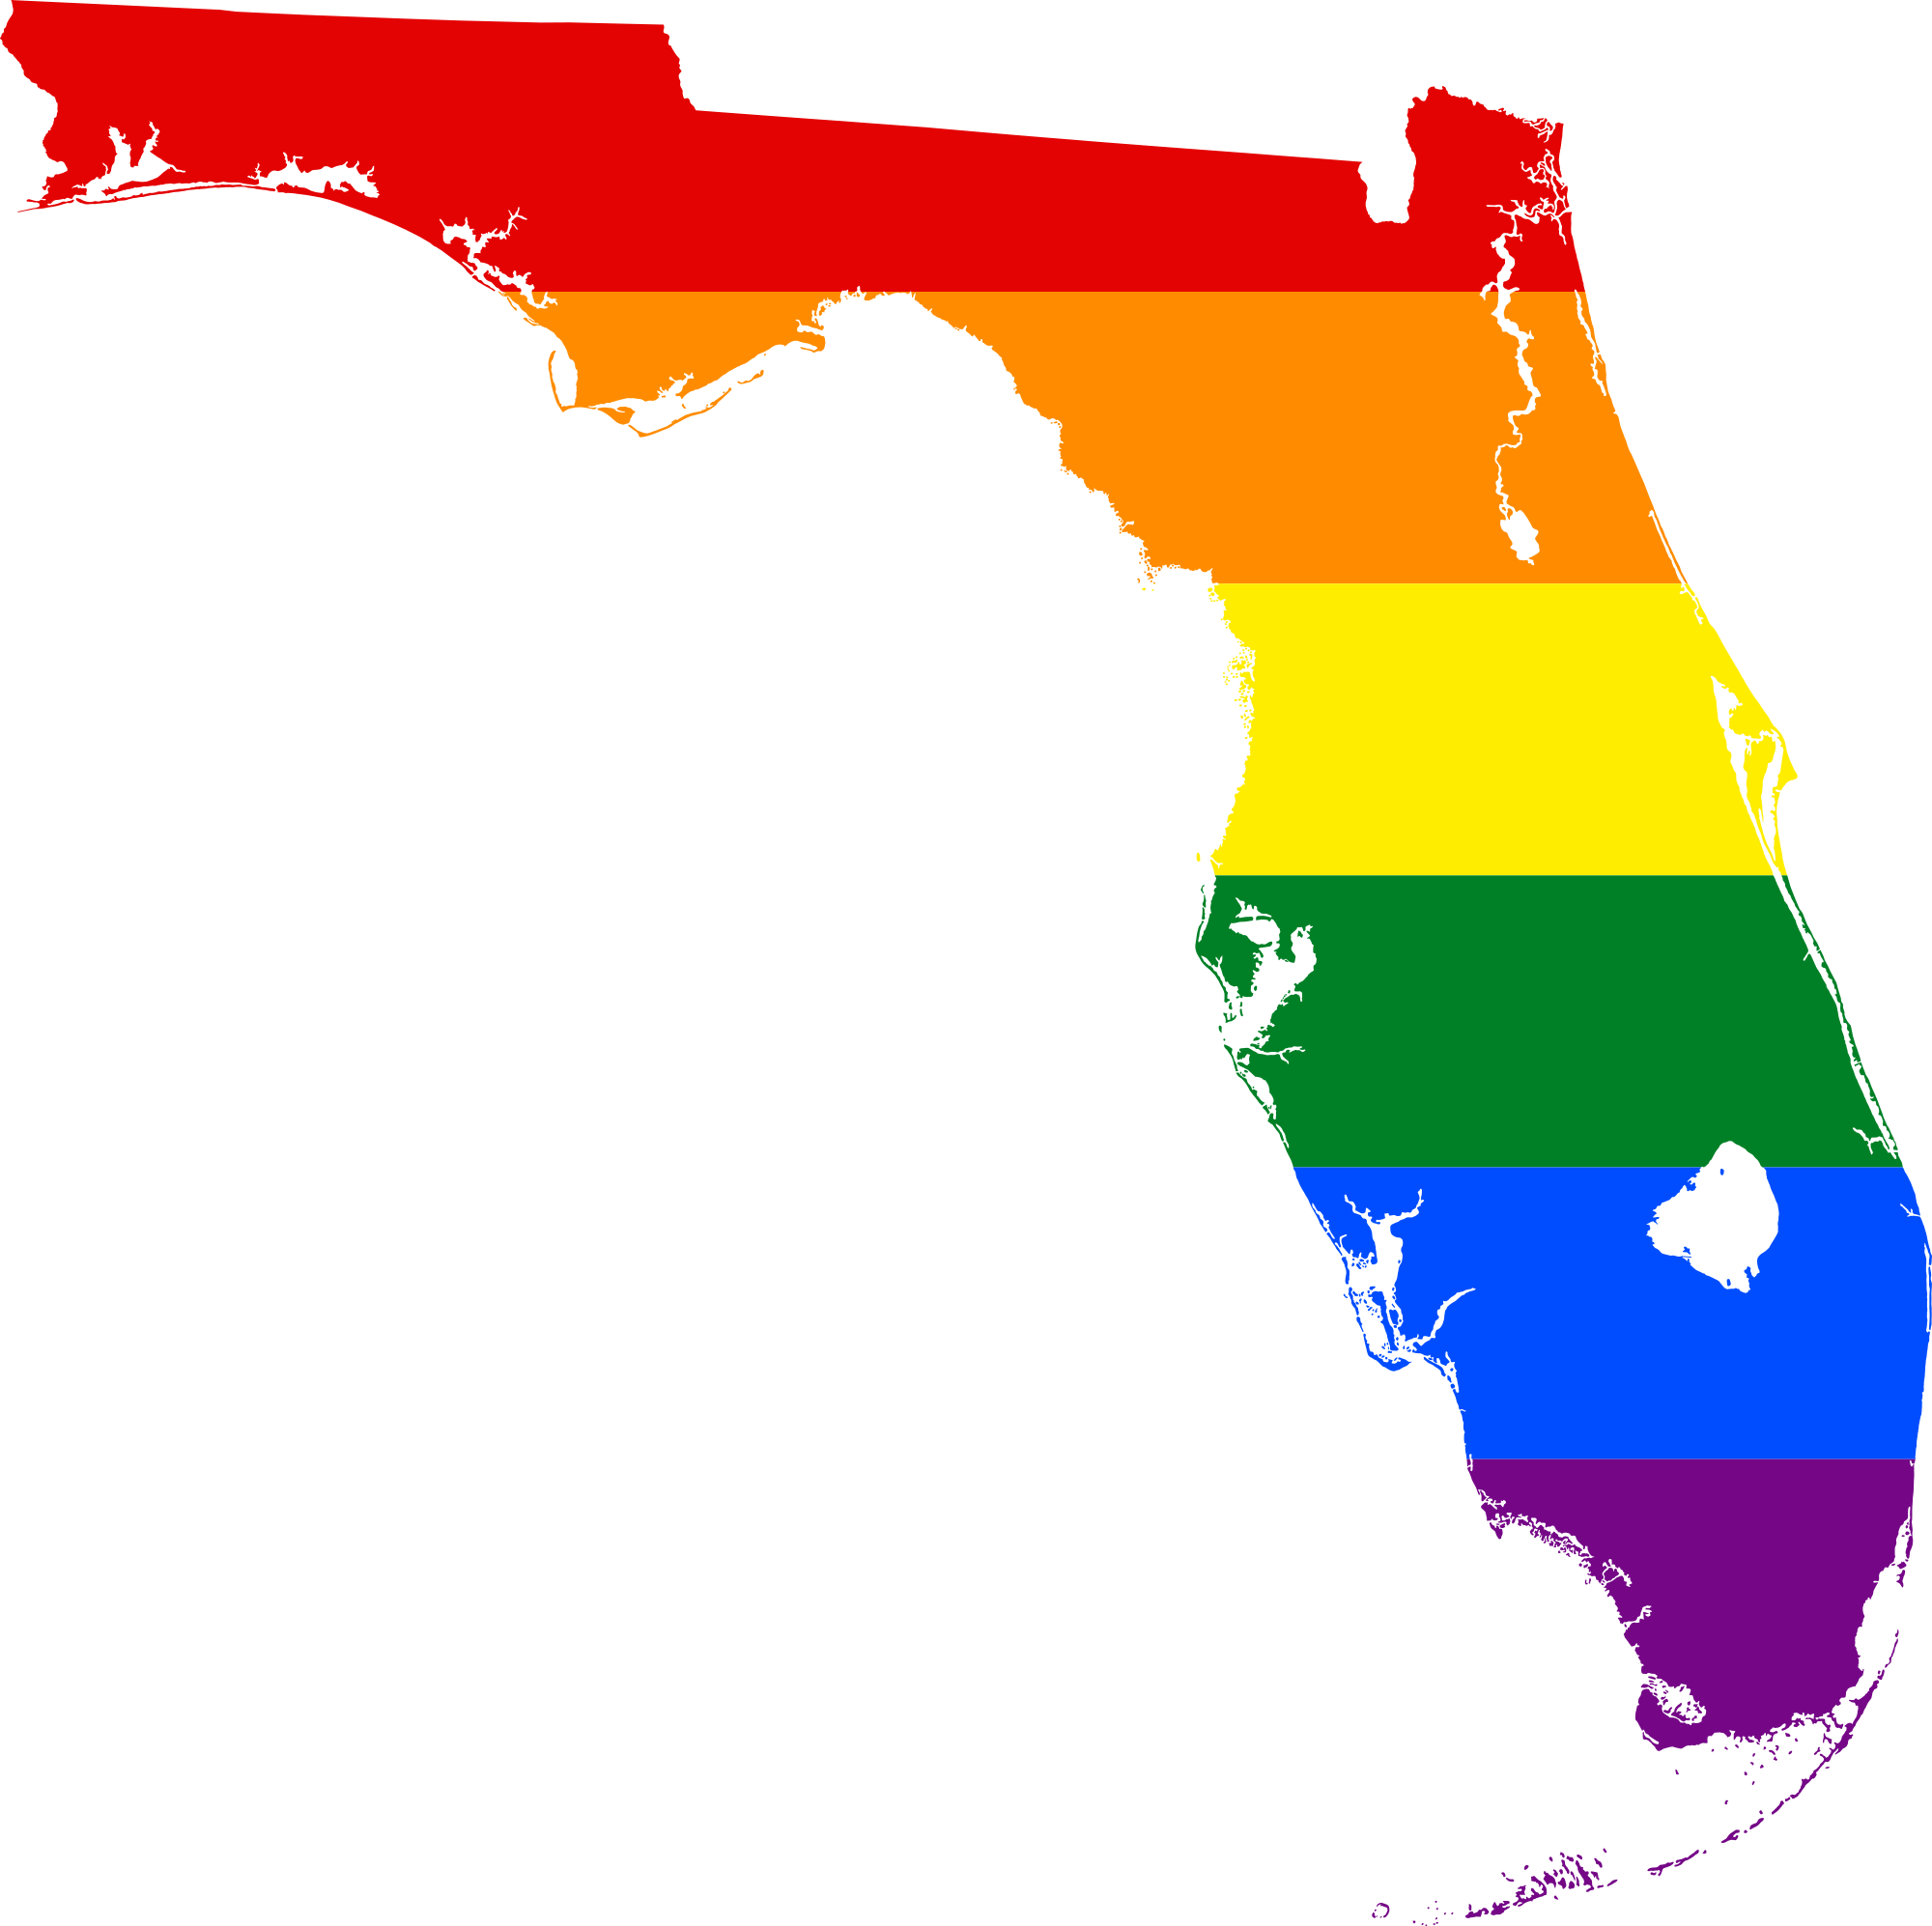 Florida png. Image lgbt flag map